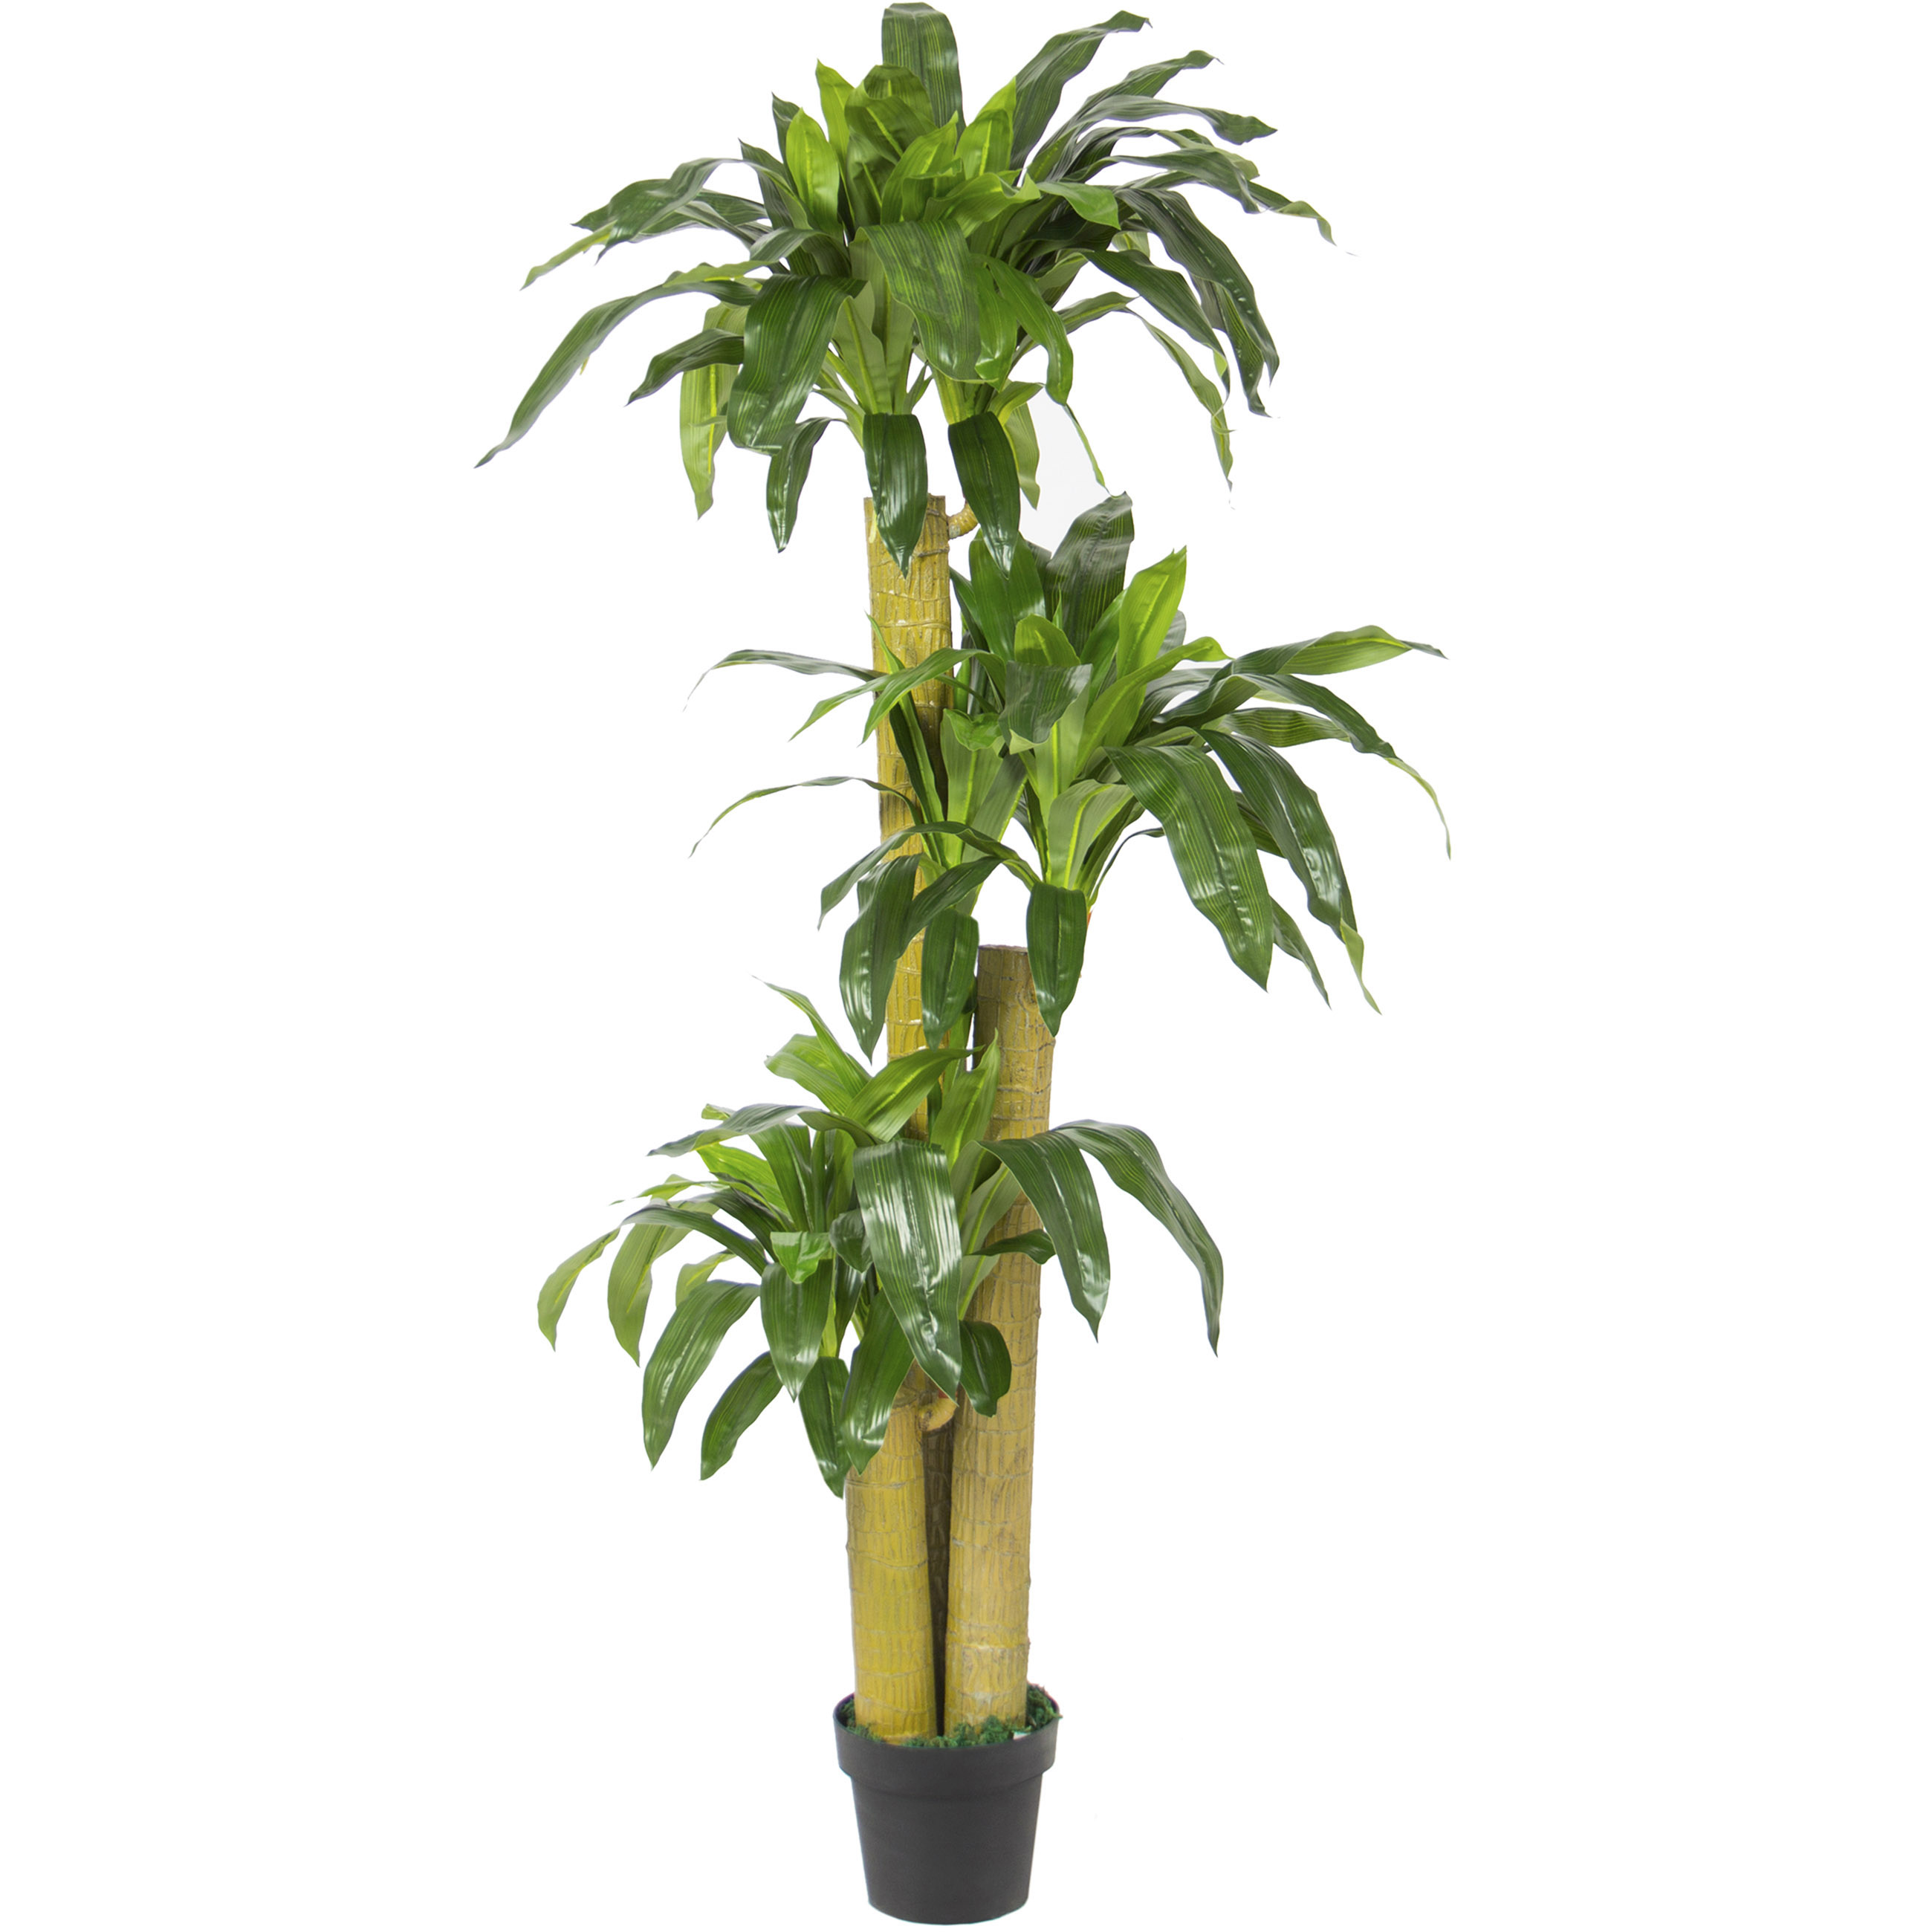 Best Choice Products 6 FT Decorative Artificial Tree Dracaena Plant